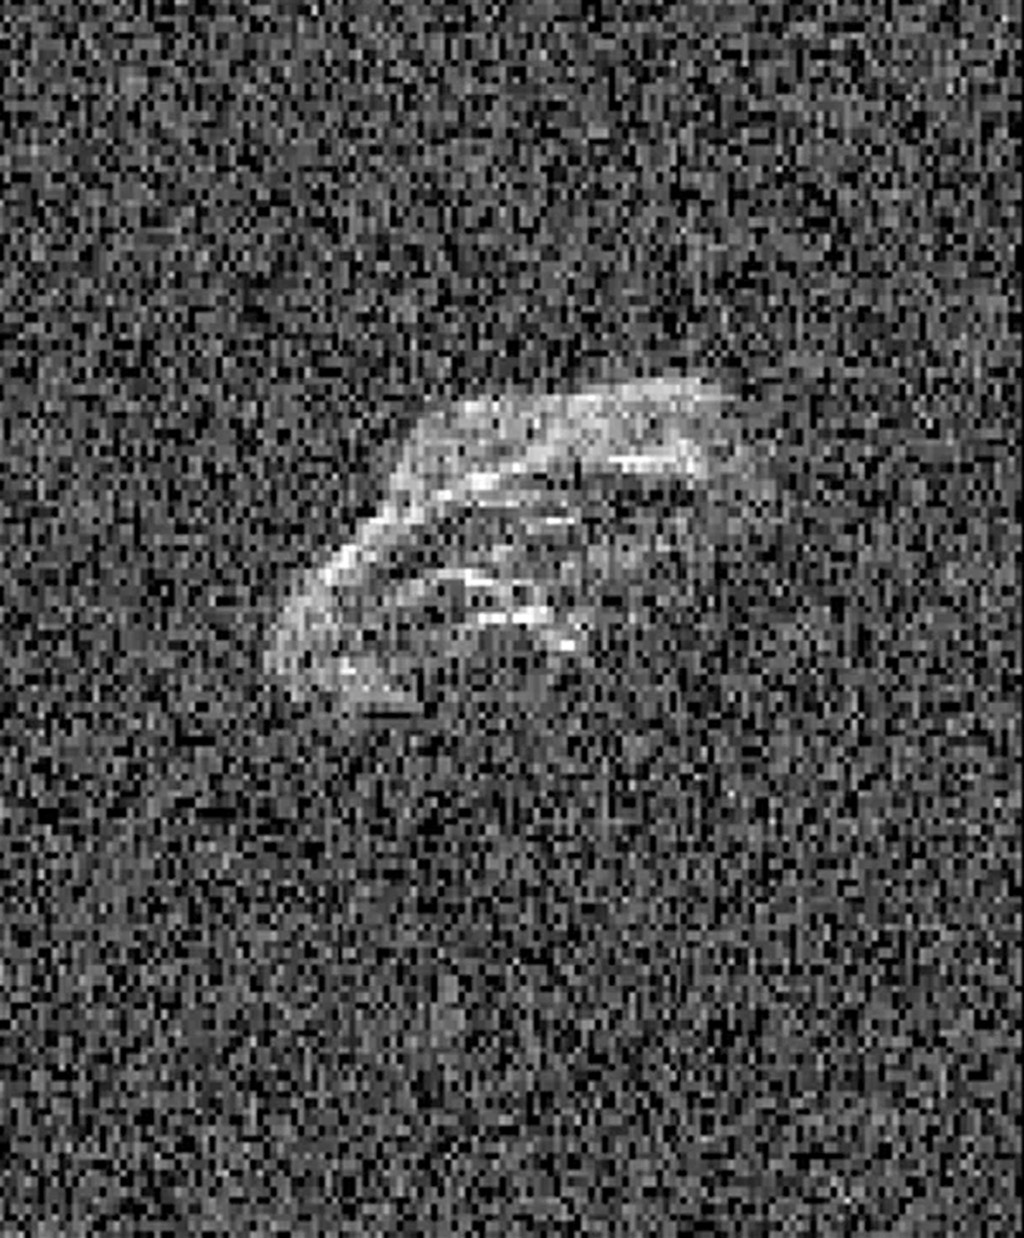 Scientists using two giant, Earth-based radio telescopes bounced radar signals off passing asteroid 2011 UW158 to create images for an animation showing the rocky body's fast rotation. This is a frame from the animation.